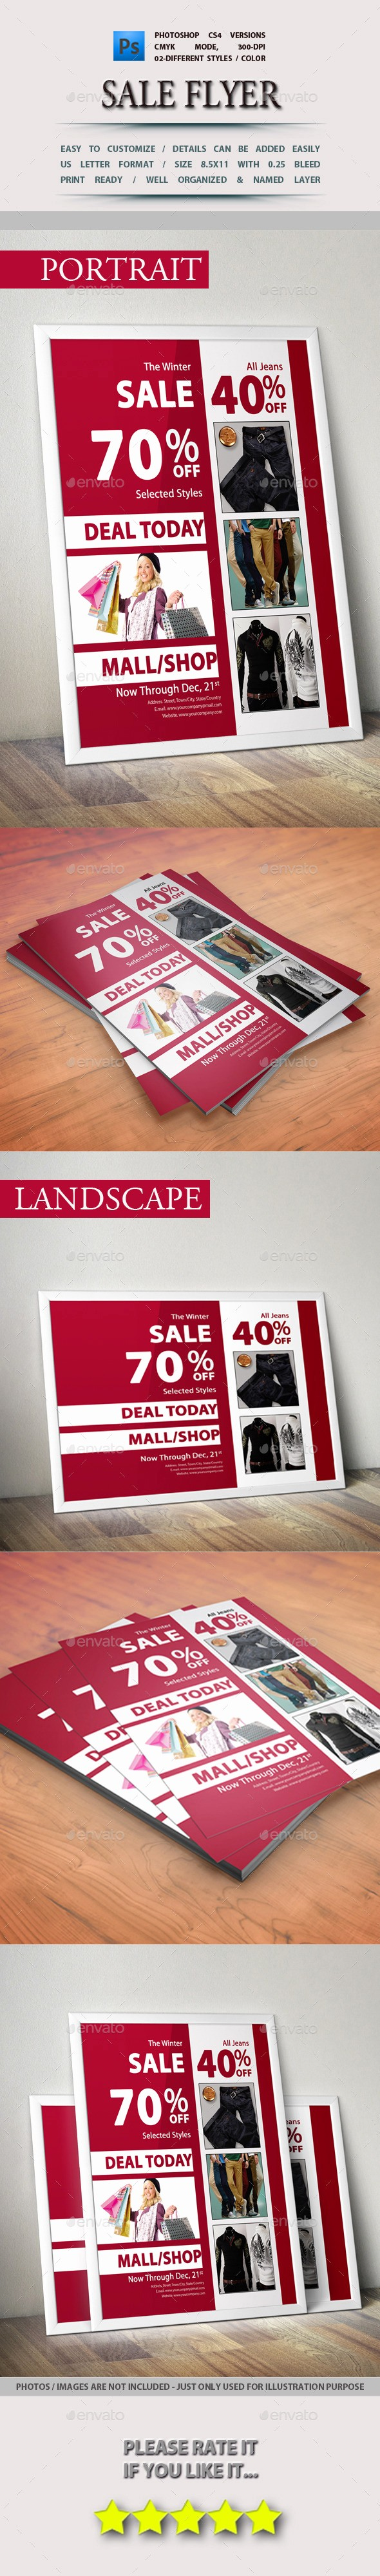 Puppy for Sale Flyer Templates Elegant Free Hot Dog Sale Flyer Template Tinkytyler Stock